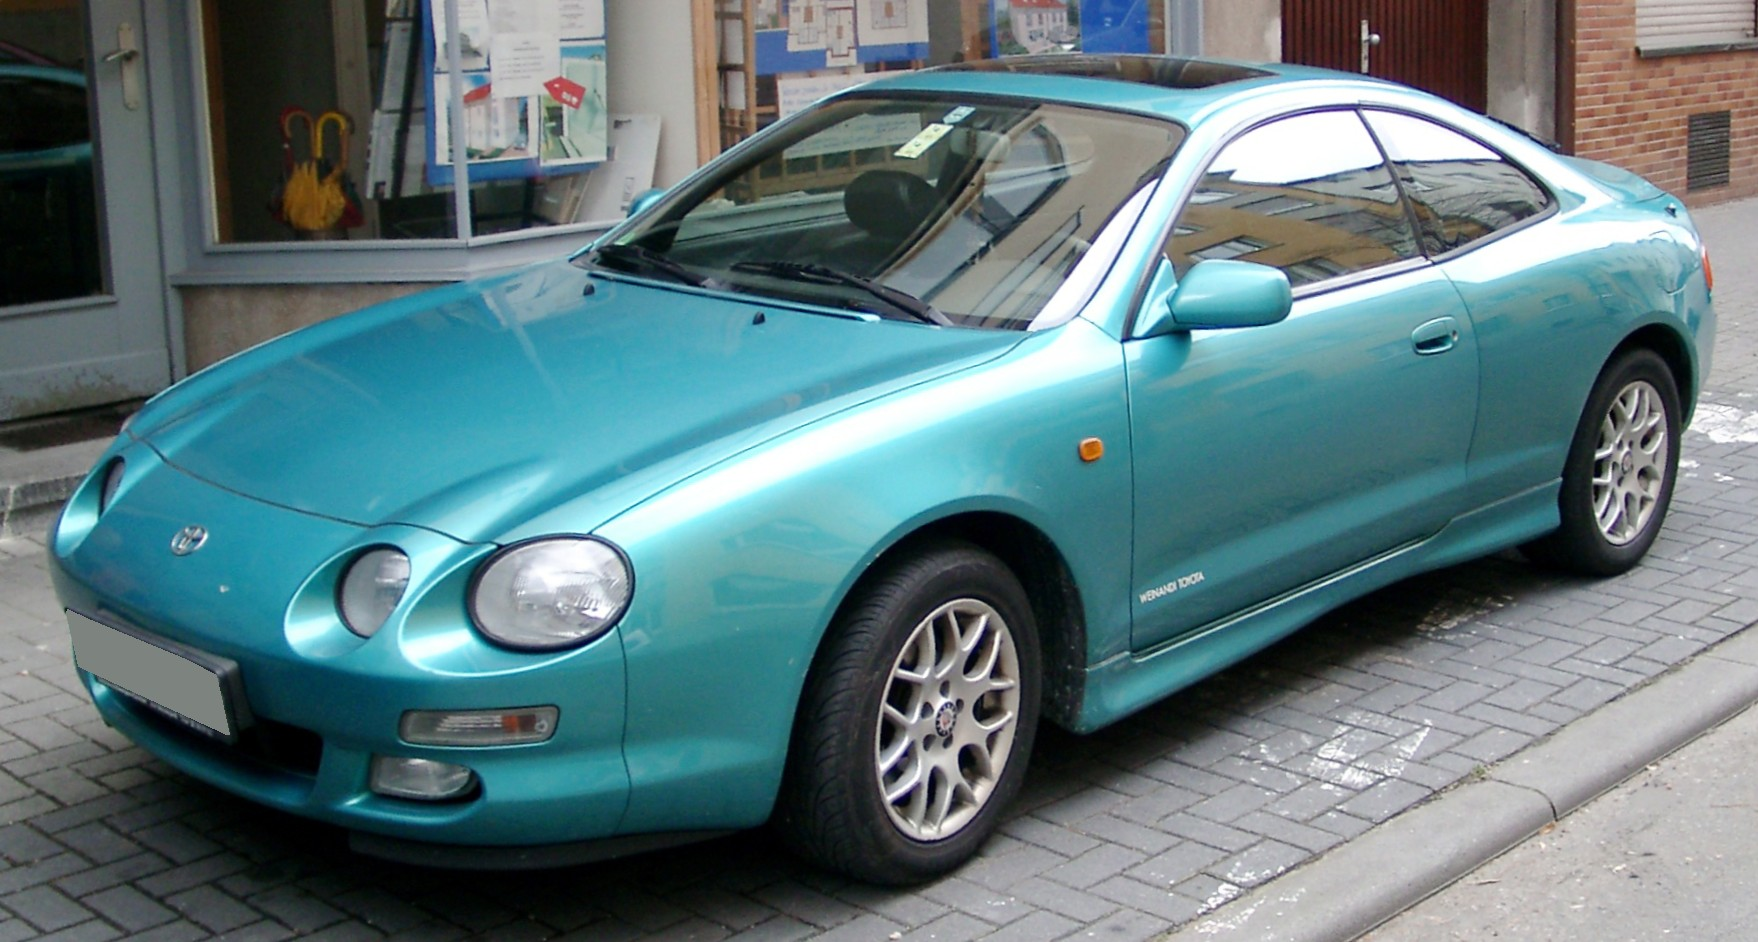 File:Toyota Celica front 20080320.jpg - Wikimedia Commons